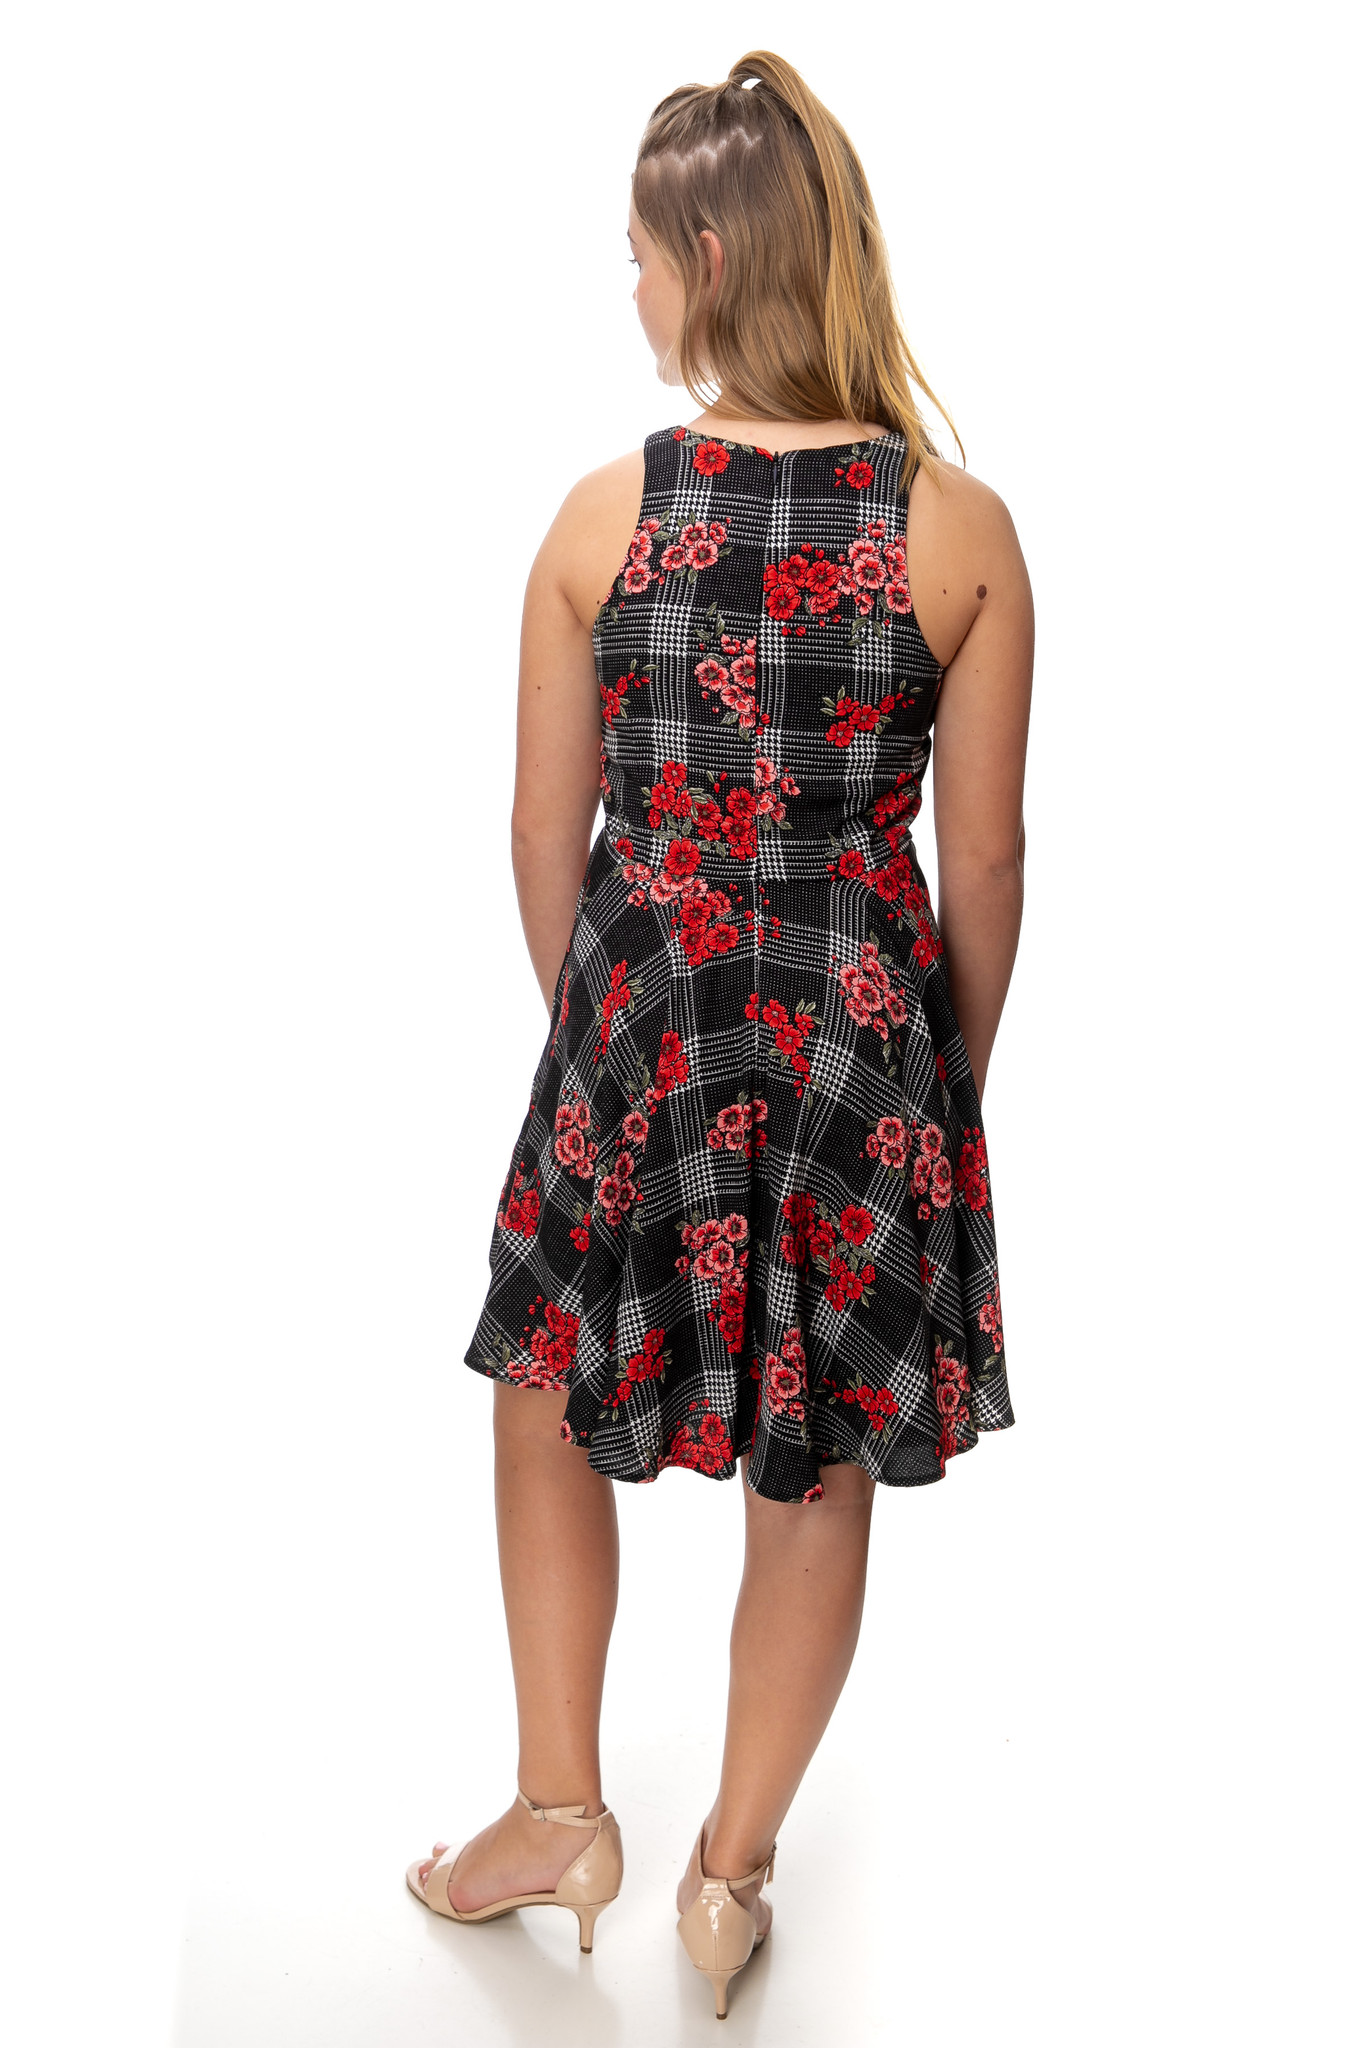 Floral Plaid Racer Back Dress in Longer Length back.